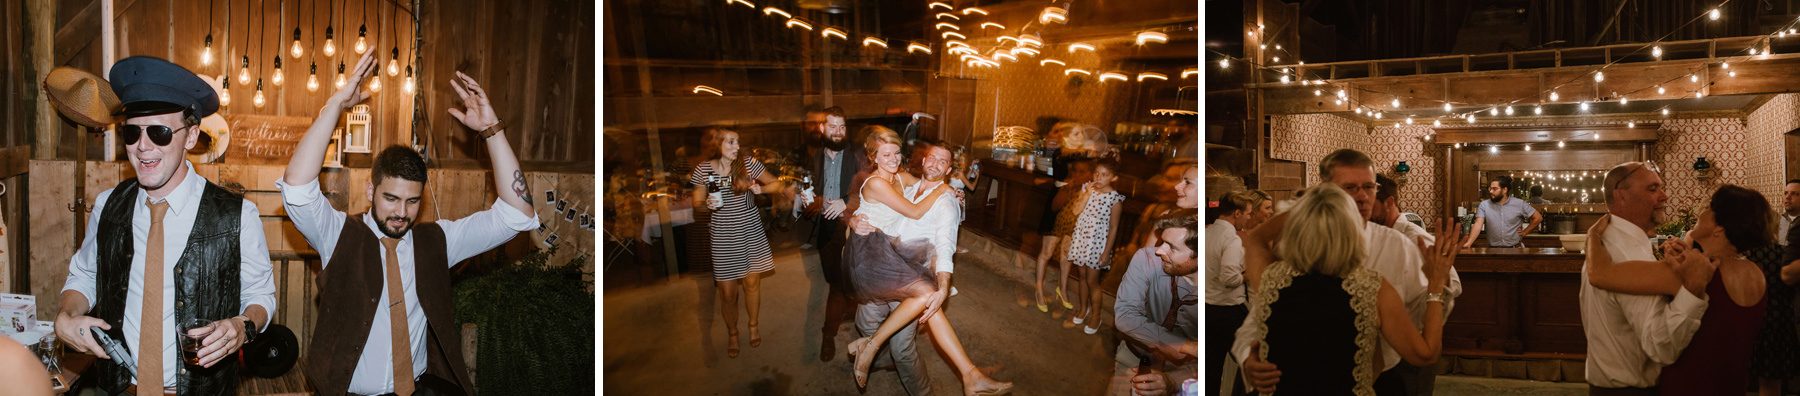 93_Alldredge Orchards Outdoor Wedding Kansas City, Missouri_Kindling Wedding Photography.JPG